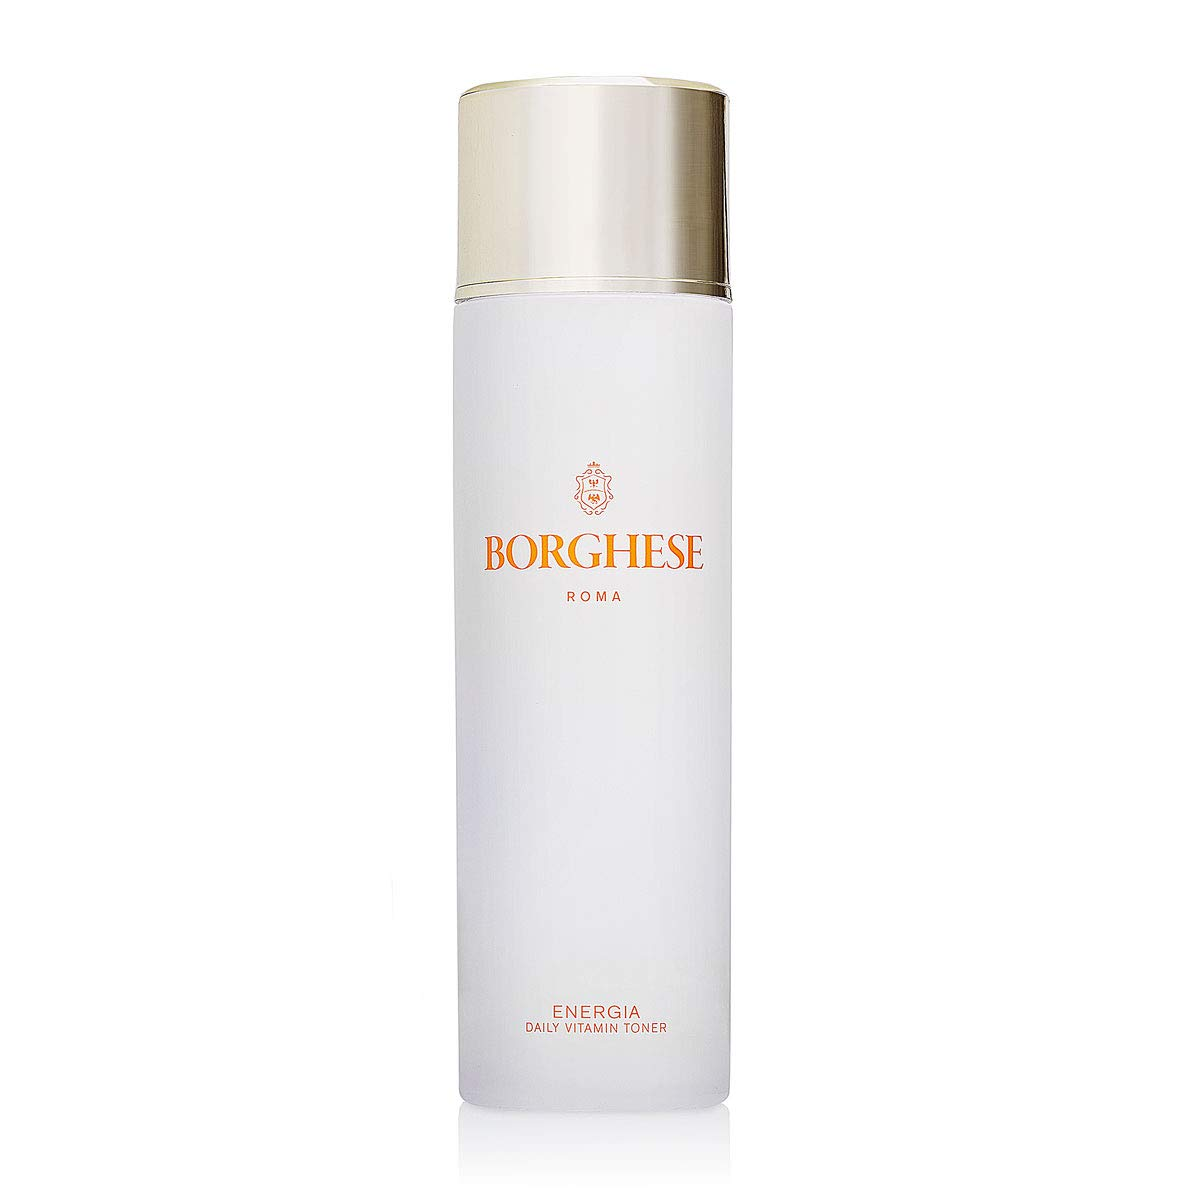 Borghese ENERGIA Daily Vitamin Toner For Face - 4.6 FL Oz